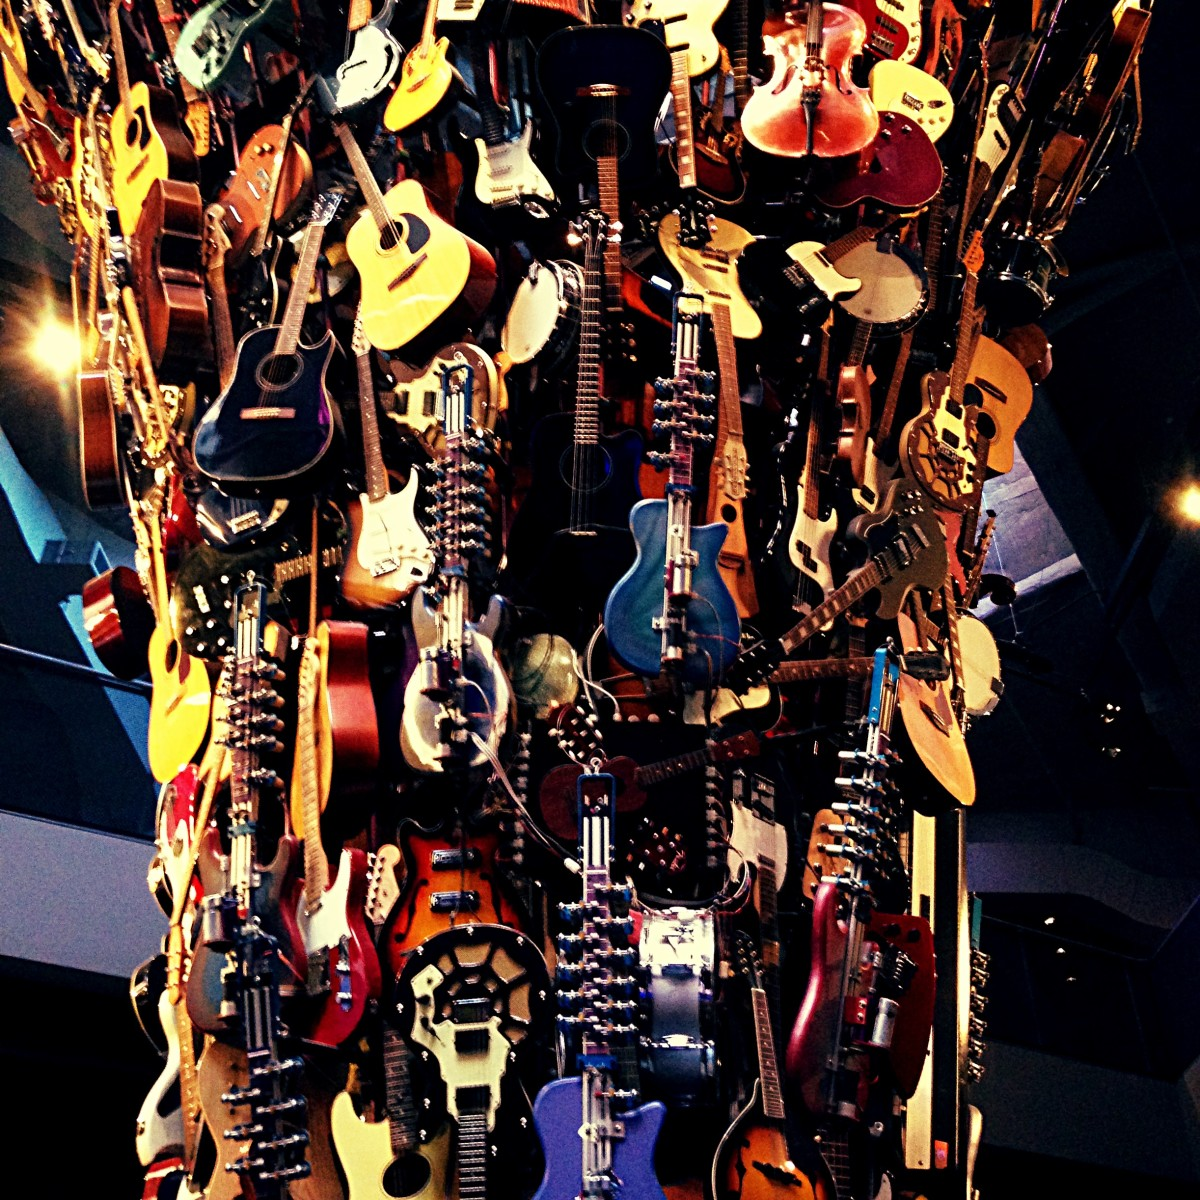 The guitar sculpture hanging from the ceiling of the EMP museum in Seattle, Washington.  I cannot begin to count how many instruments make up this amazing art piece.